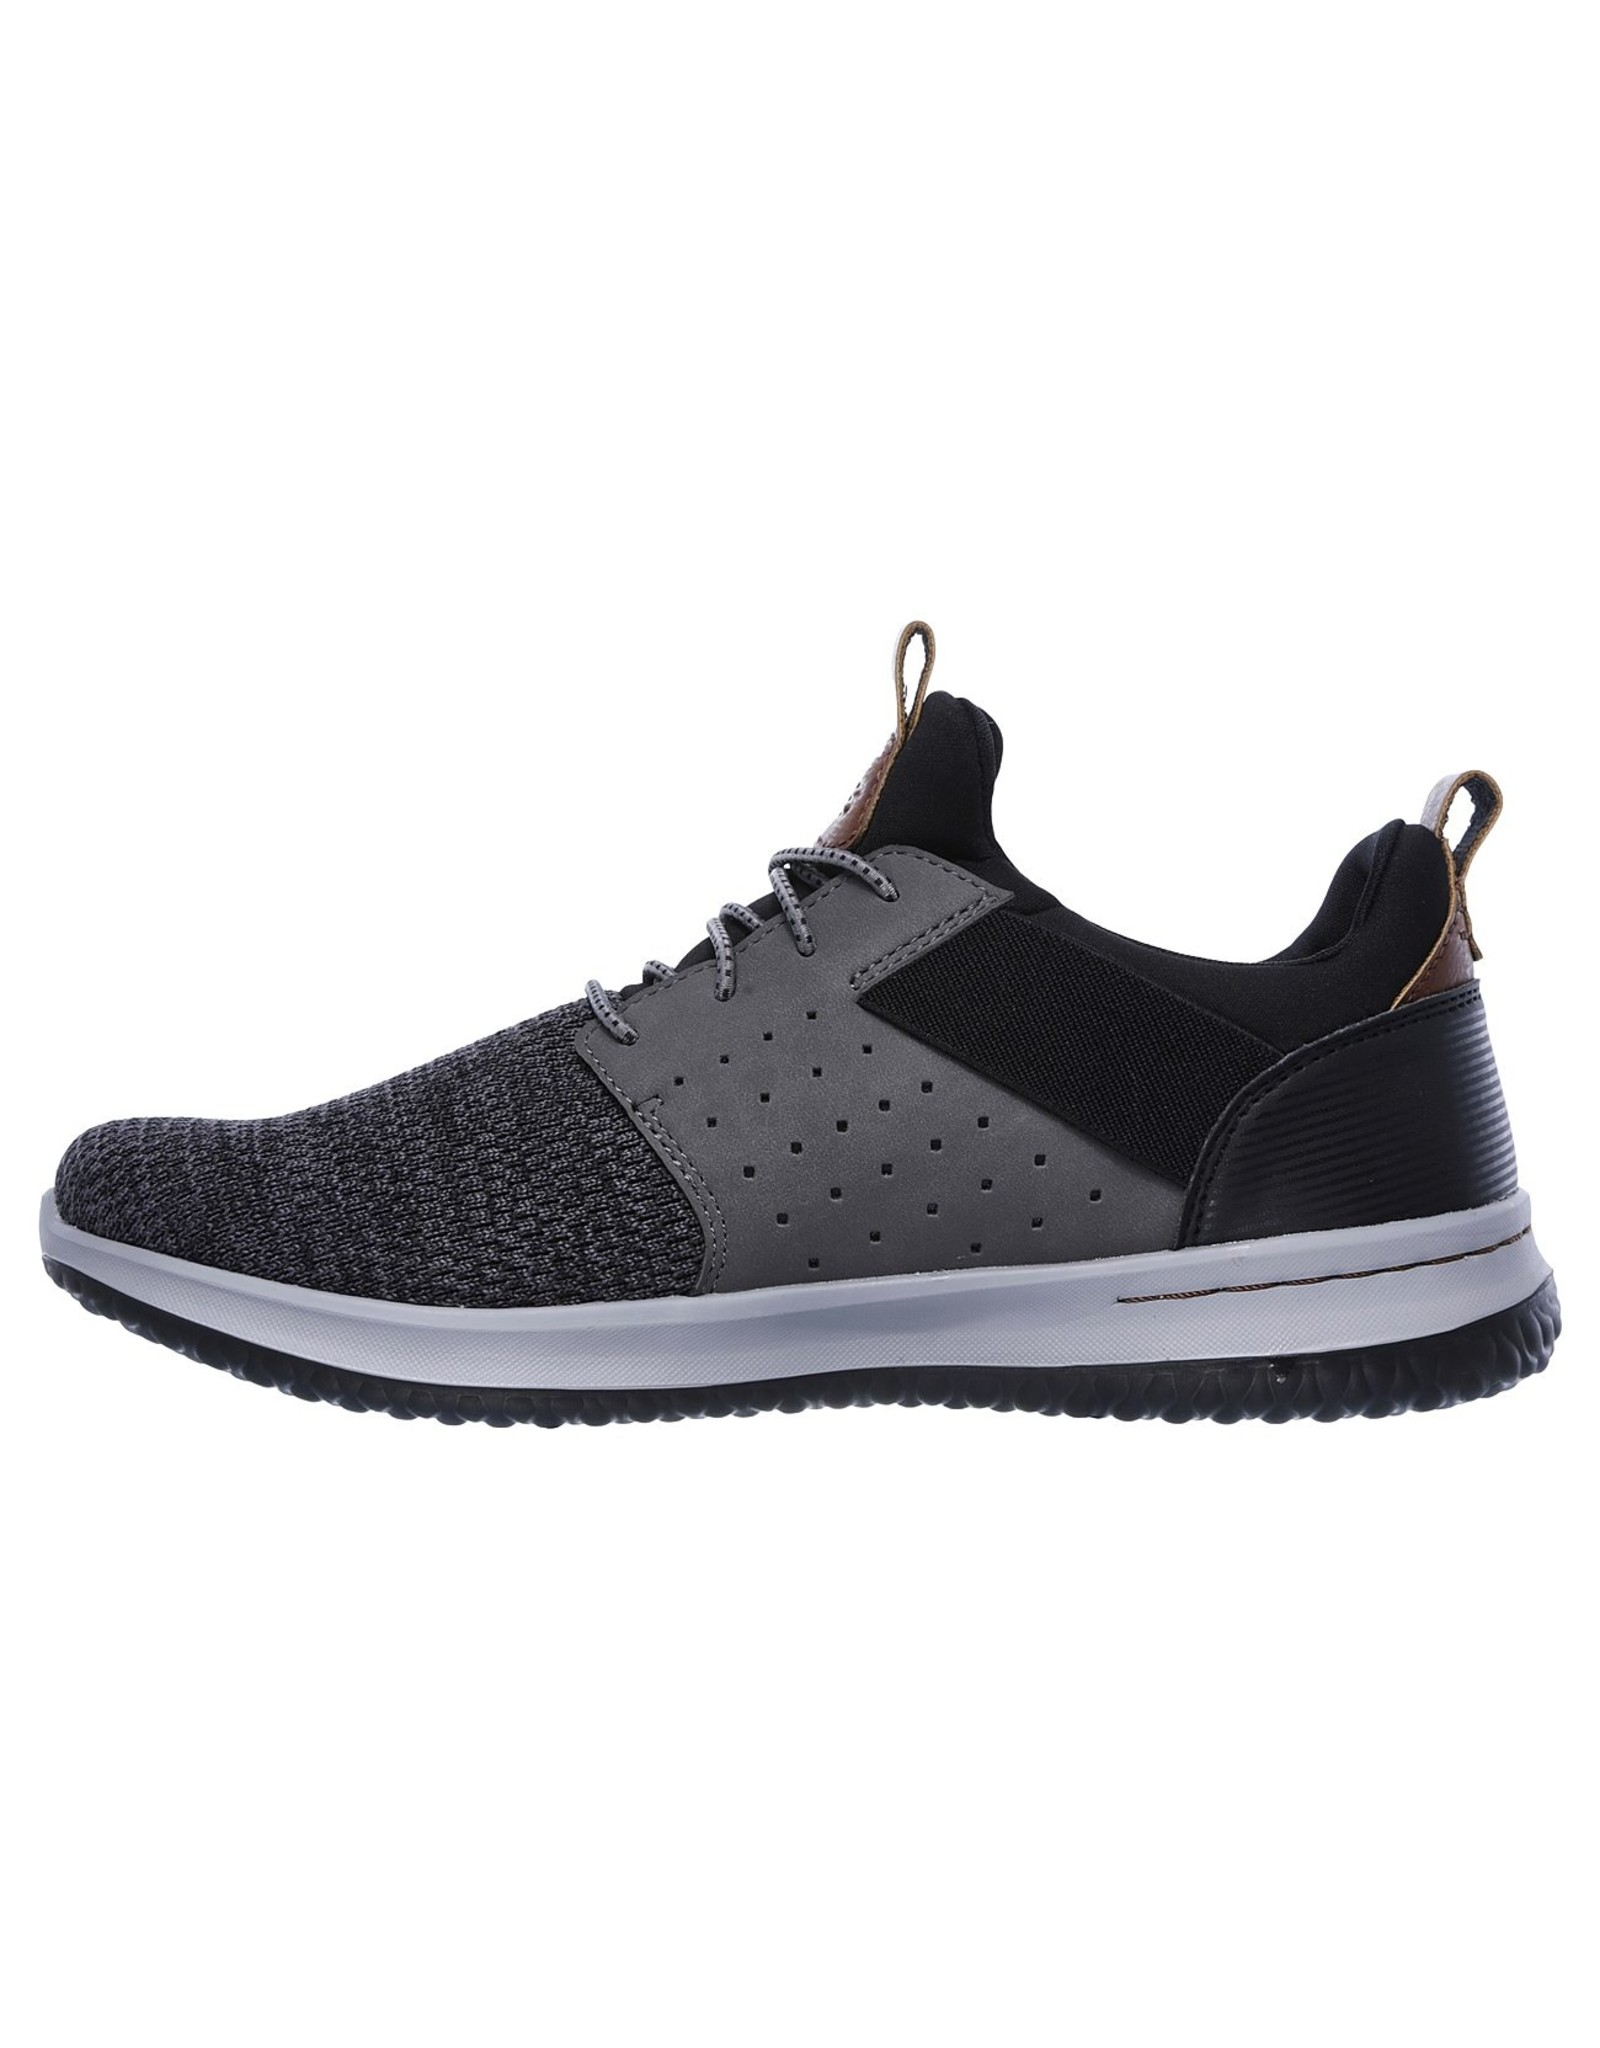 Skechers Men's Delson - Camben - ps20